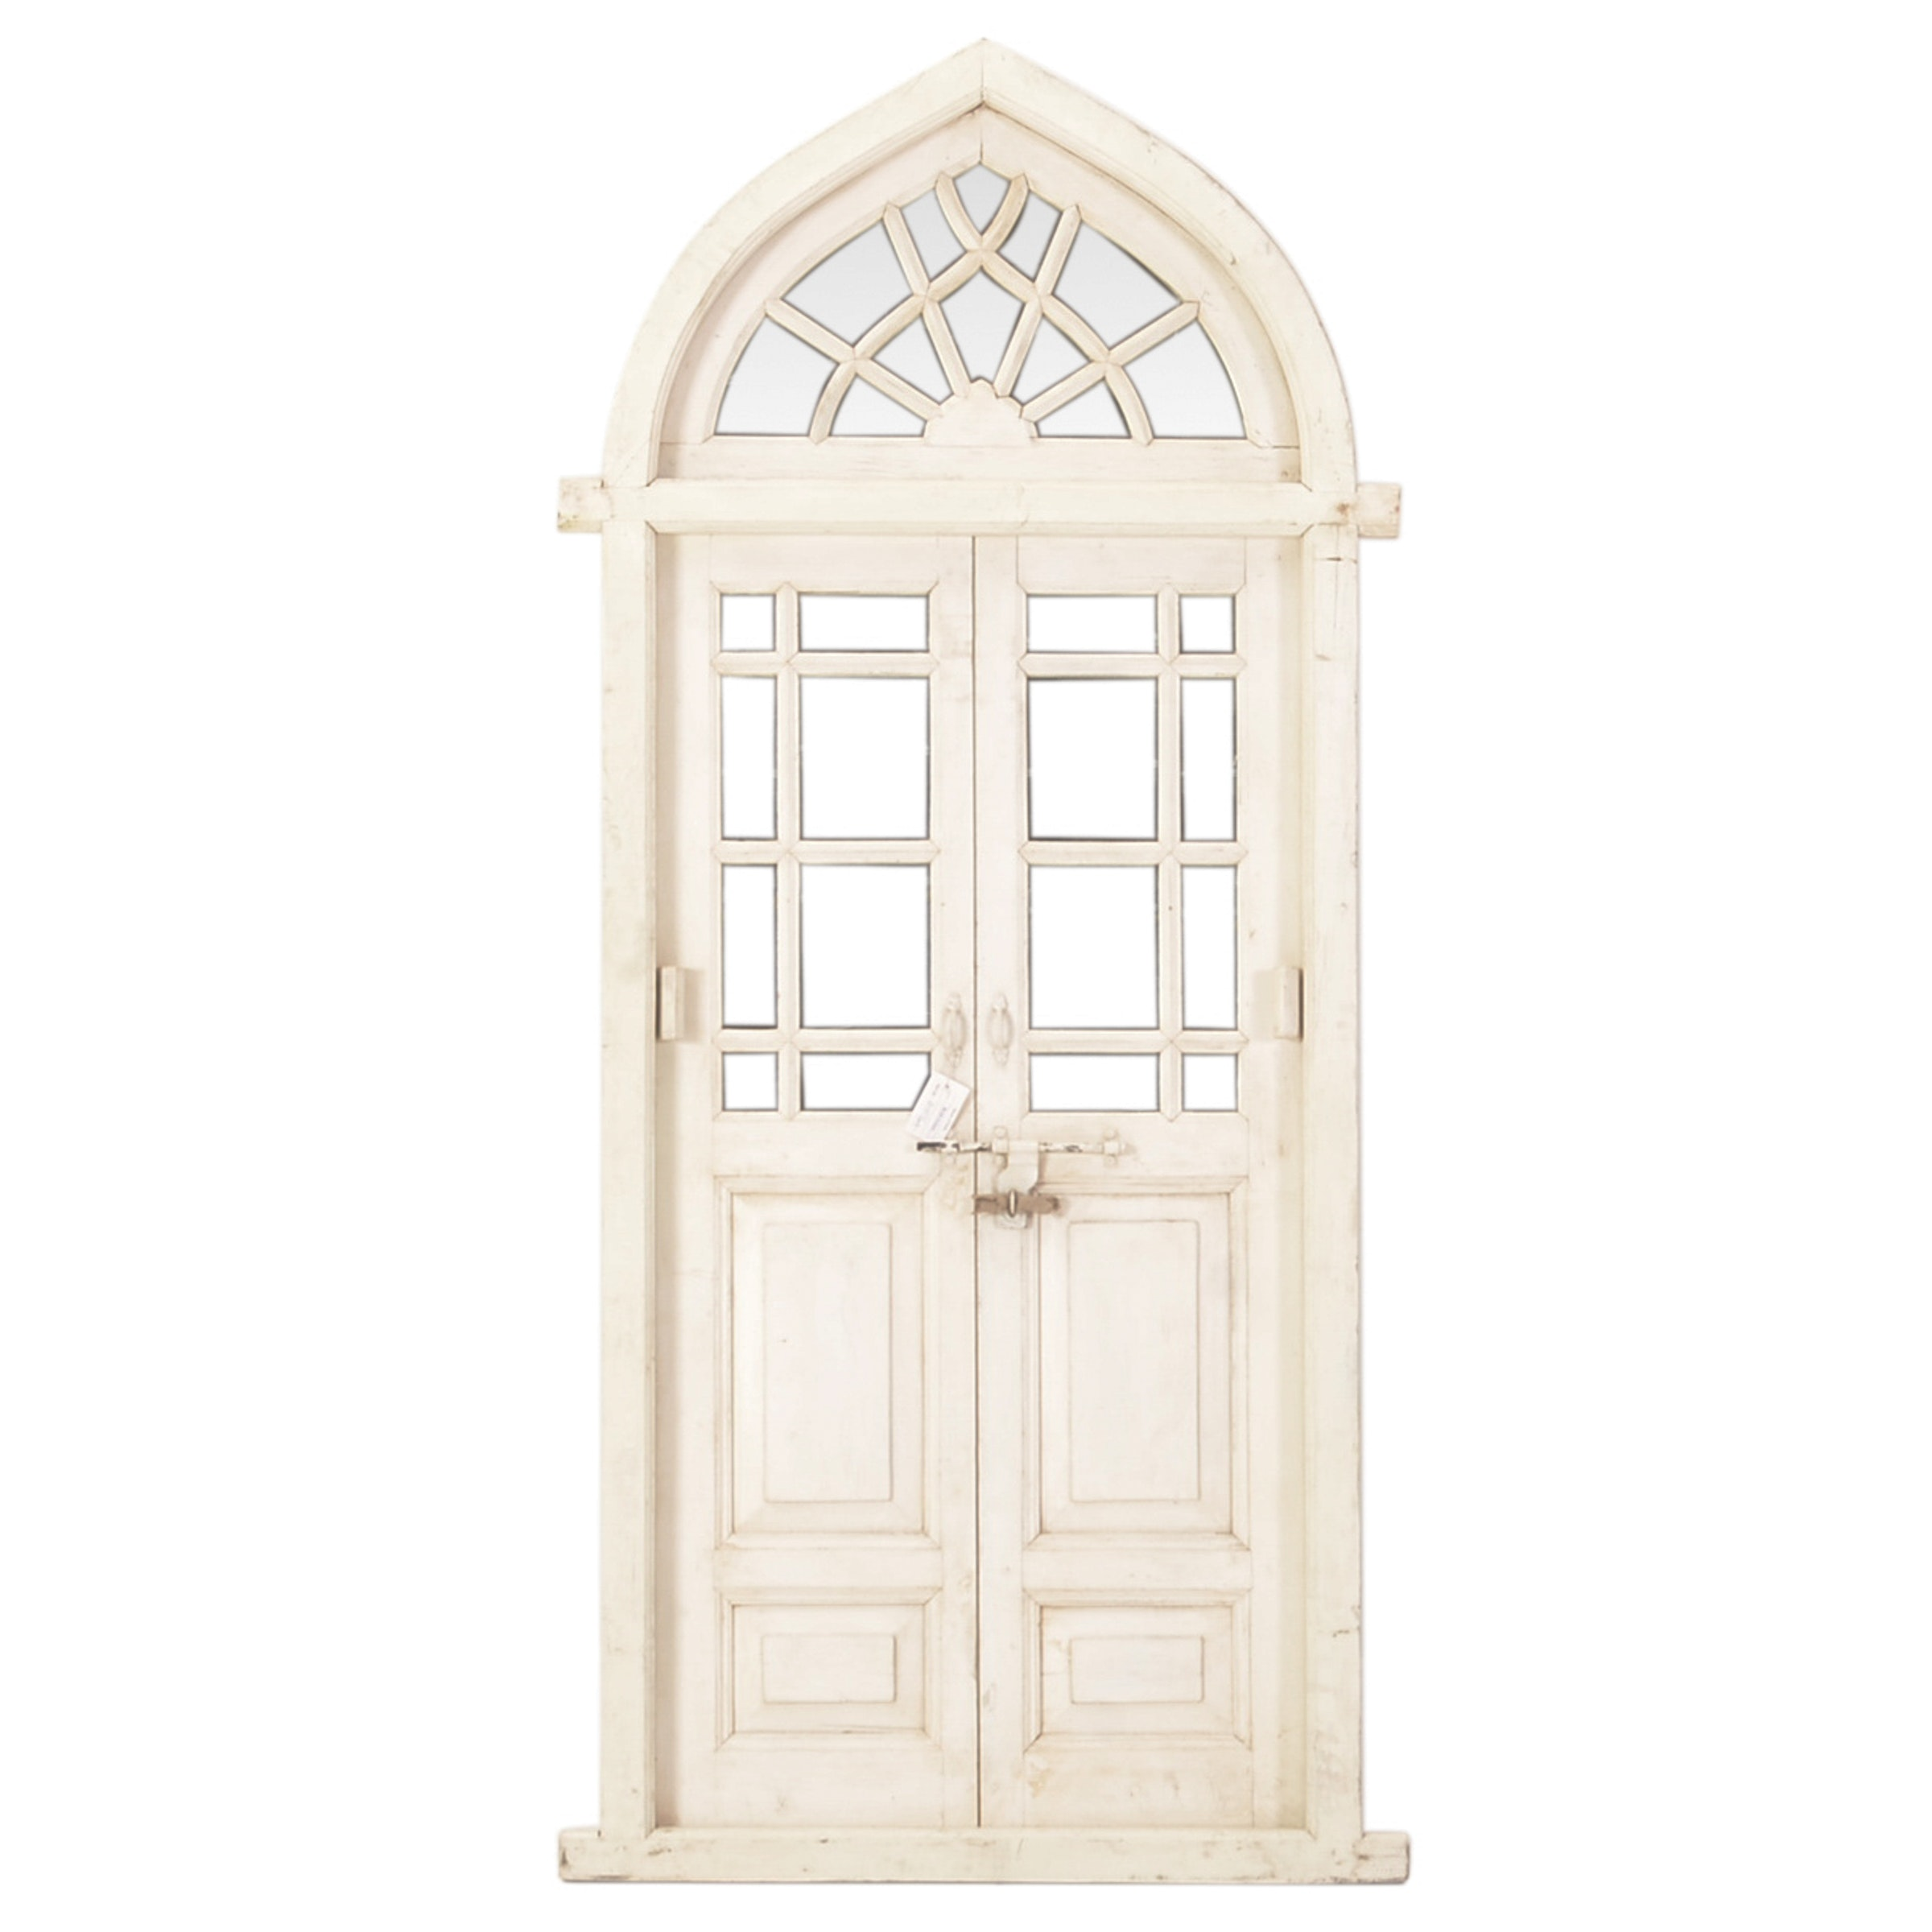 Large Decorative Arched Door